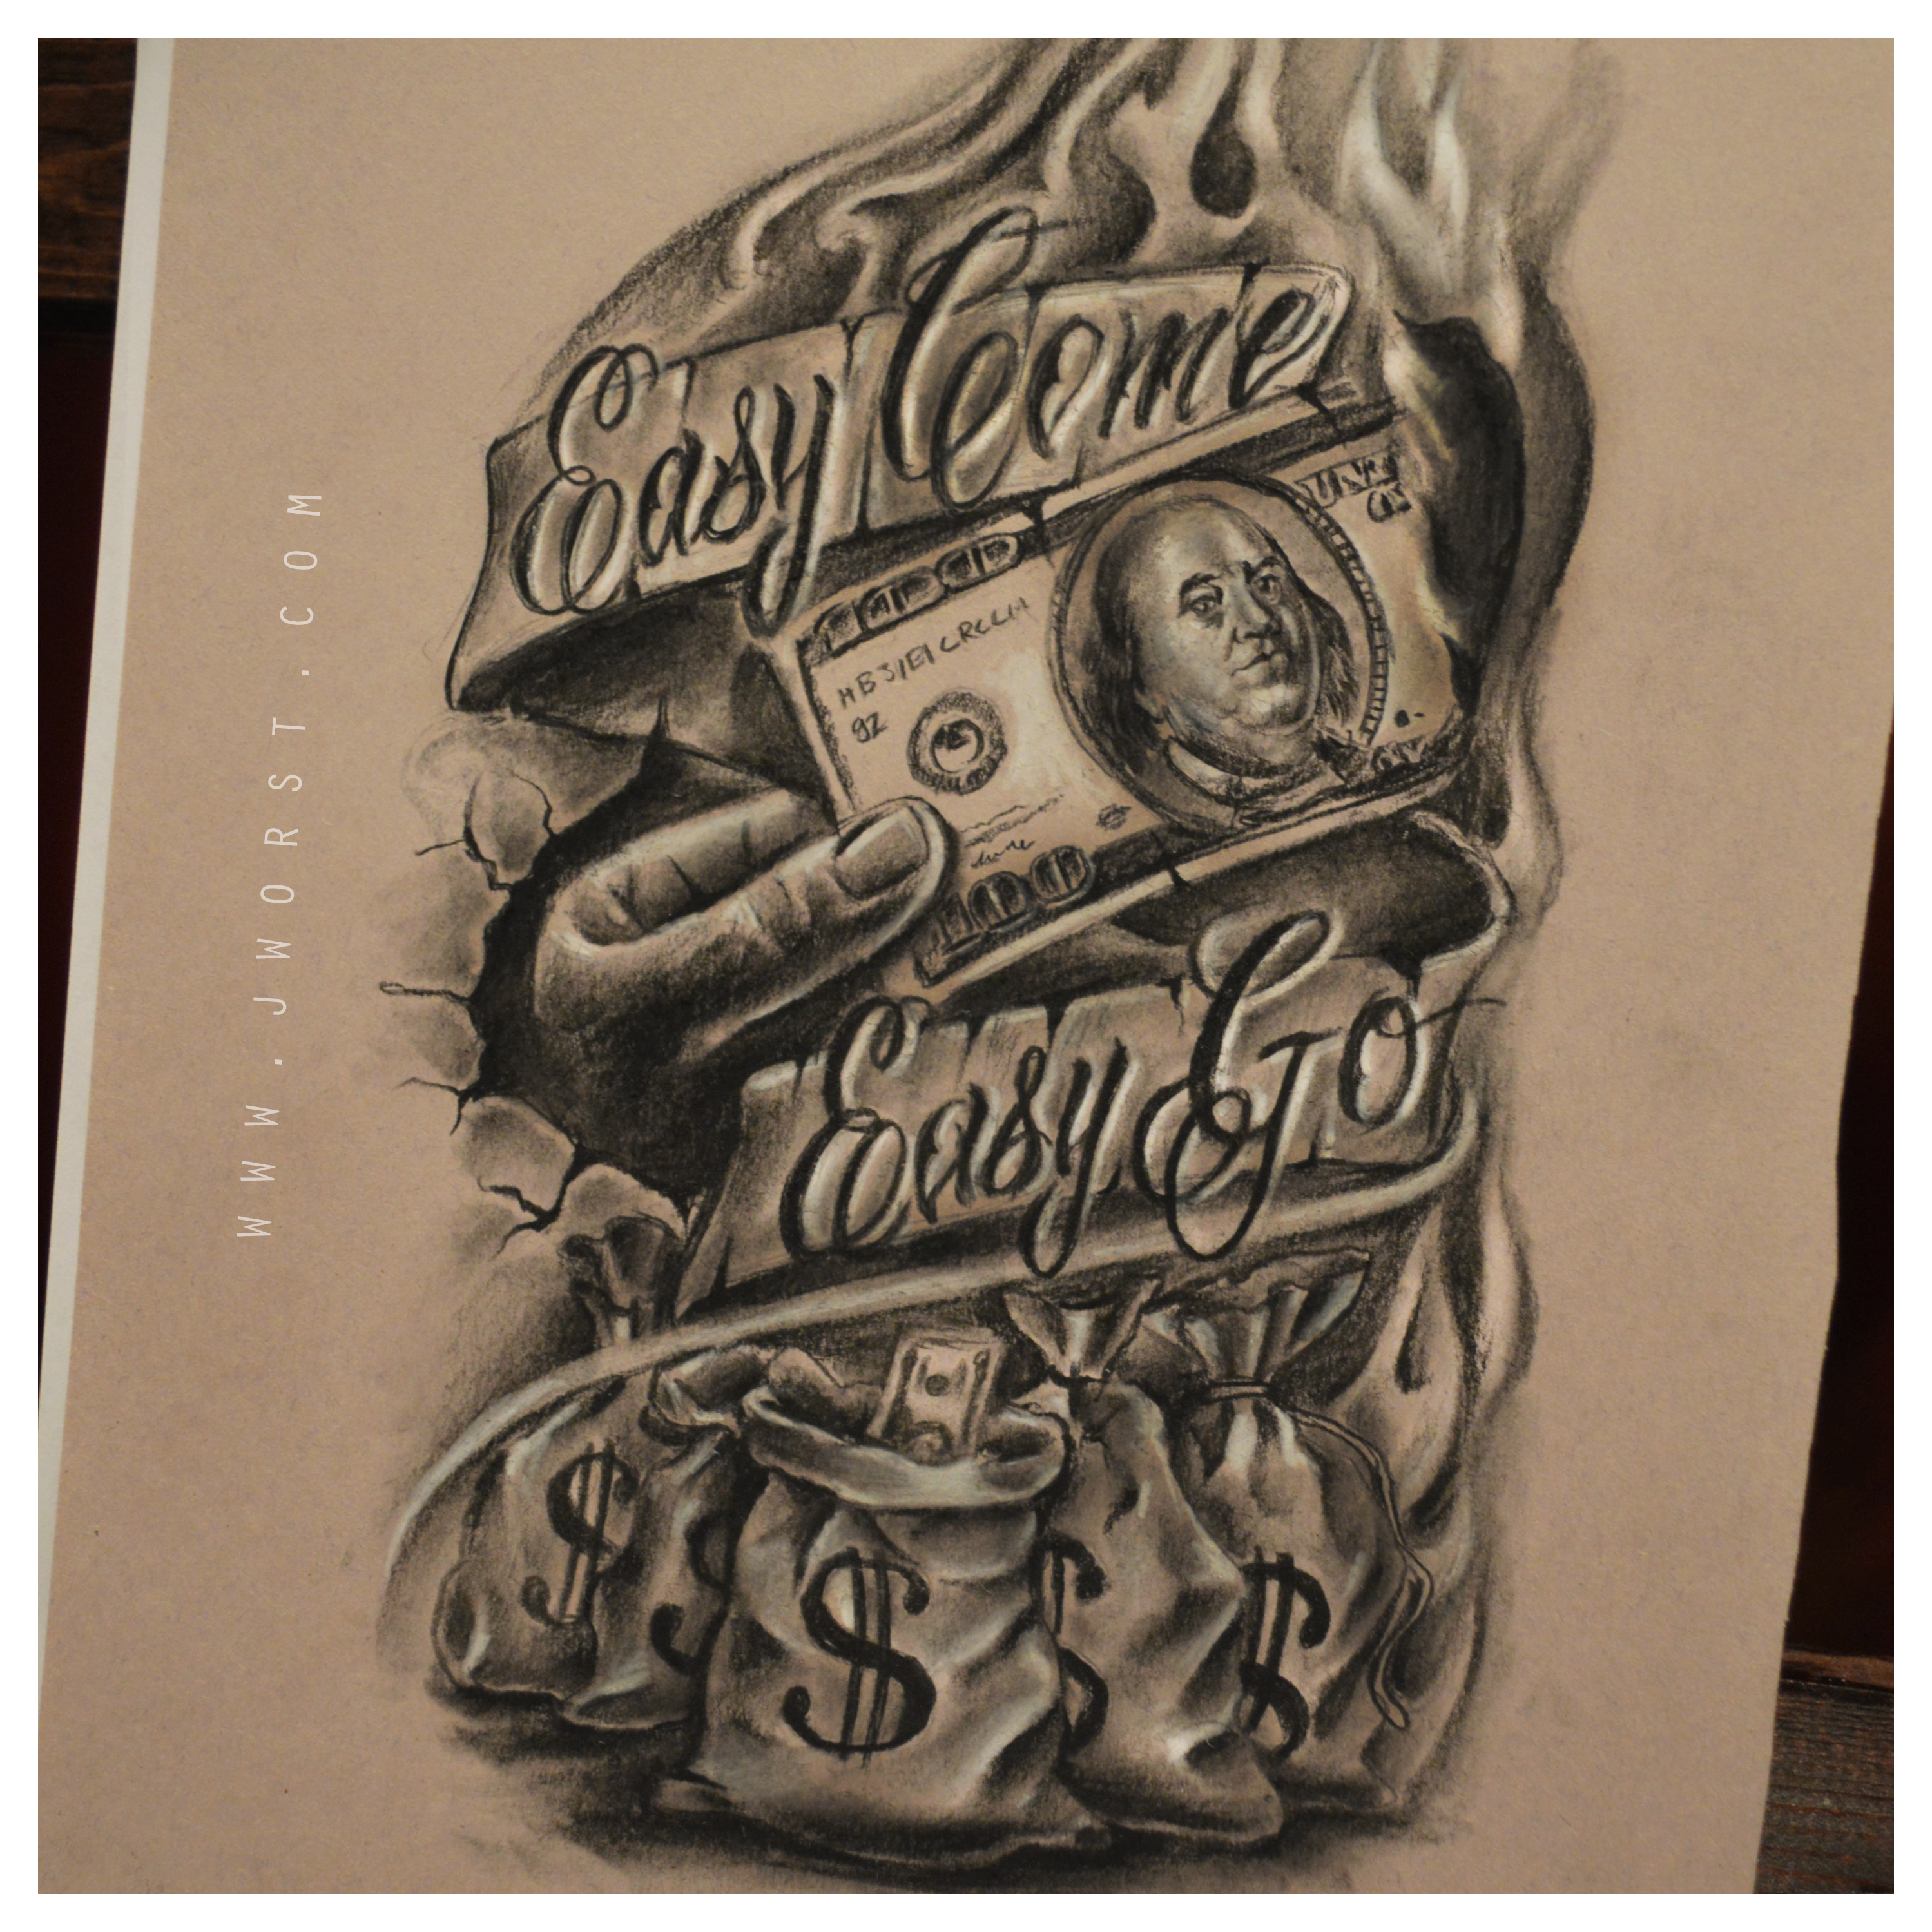 2998x2998 Easy Come Easy Go Tattoo Sketch Drawing By Jeremy Worst Jeremy